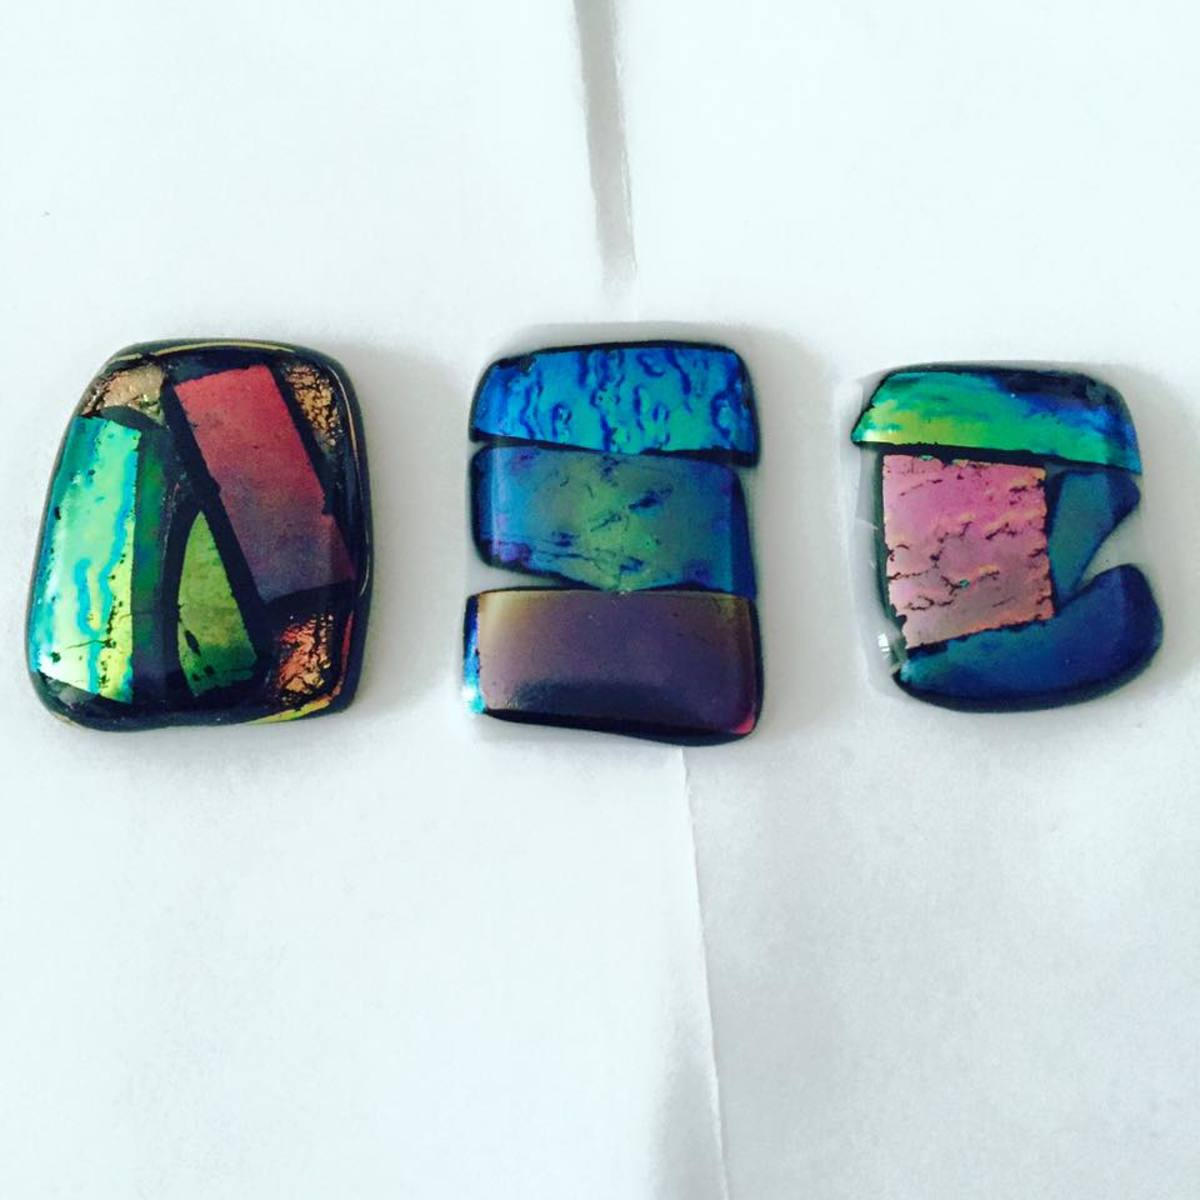 These are among the very first pendants I made in my microwave kiln! As you can see, they're very simple: just pieces of glass laid of against black or white backgrounds (base glass).